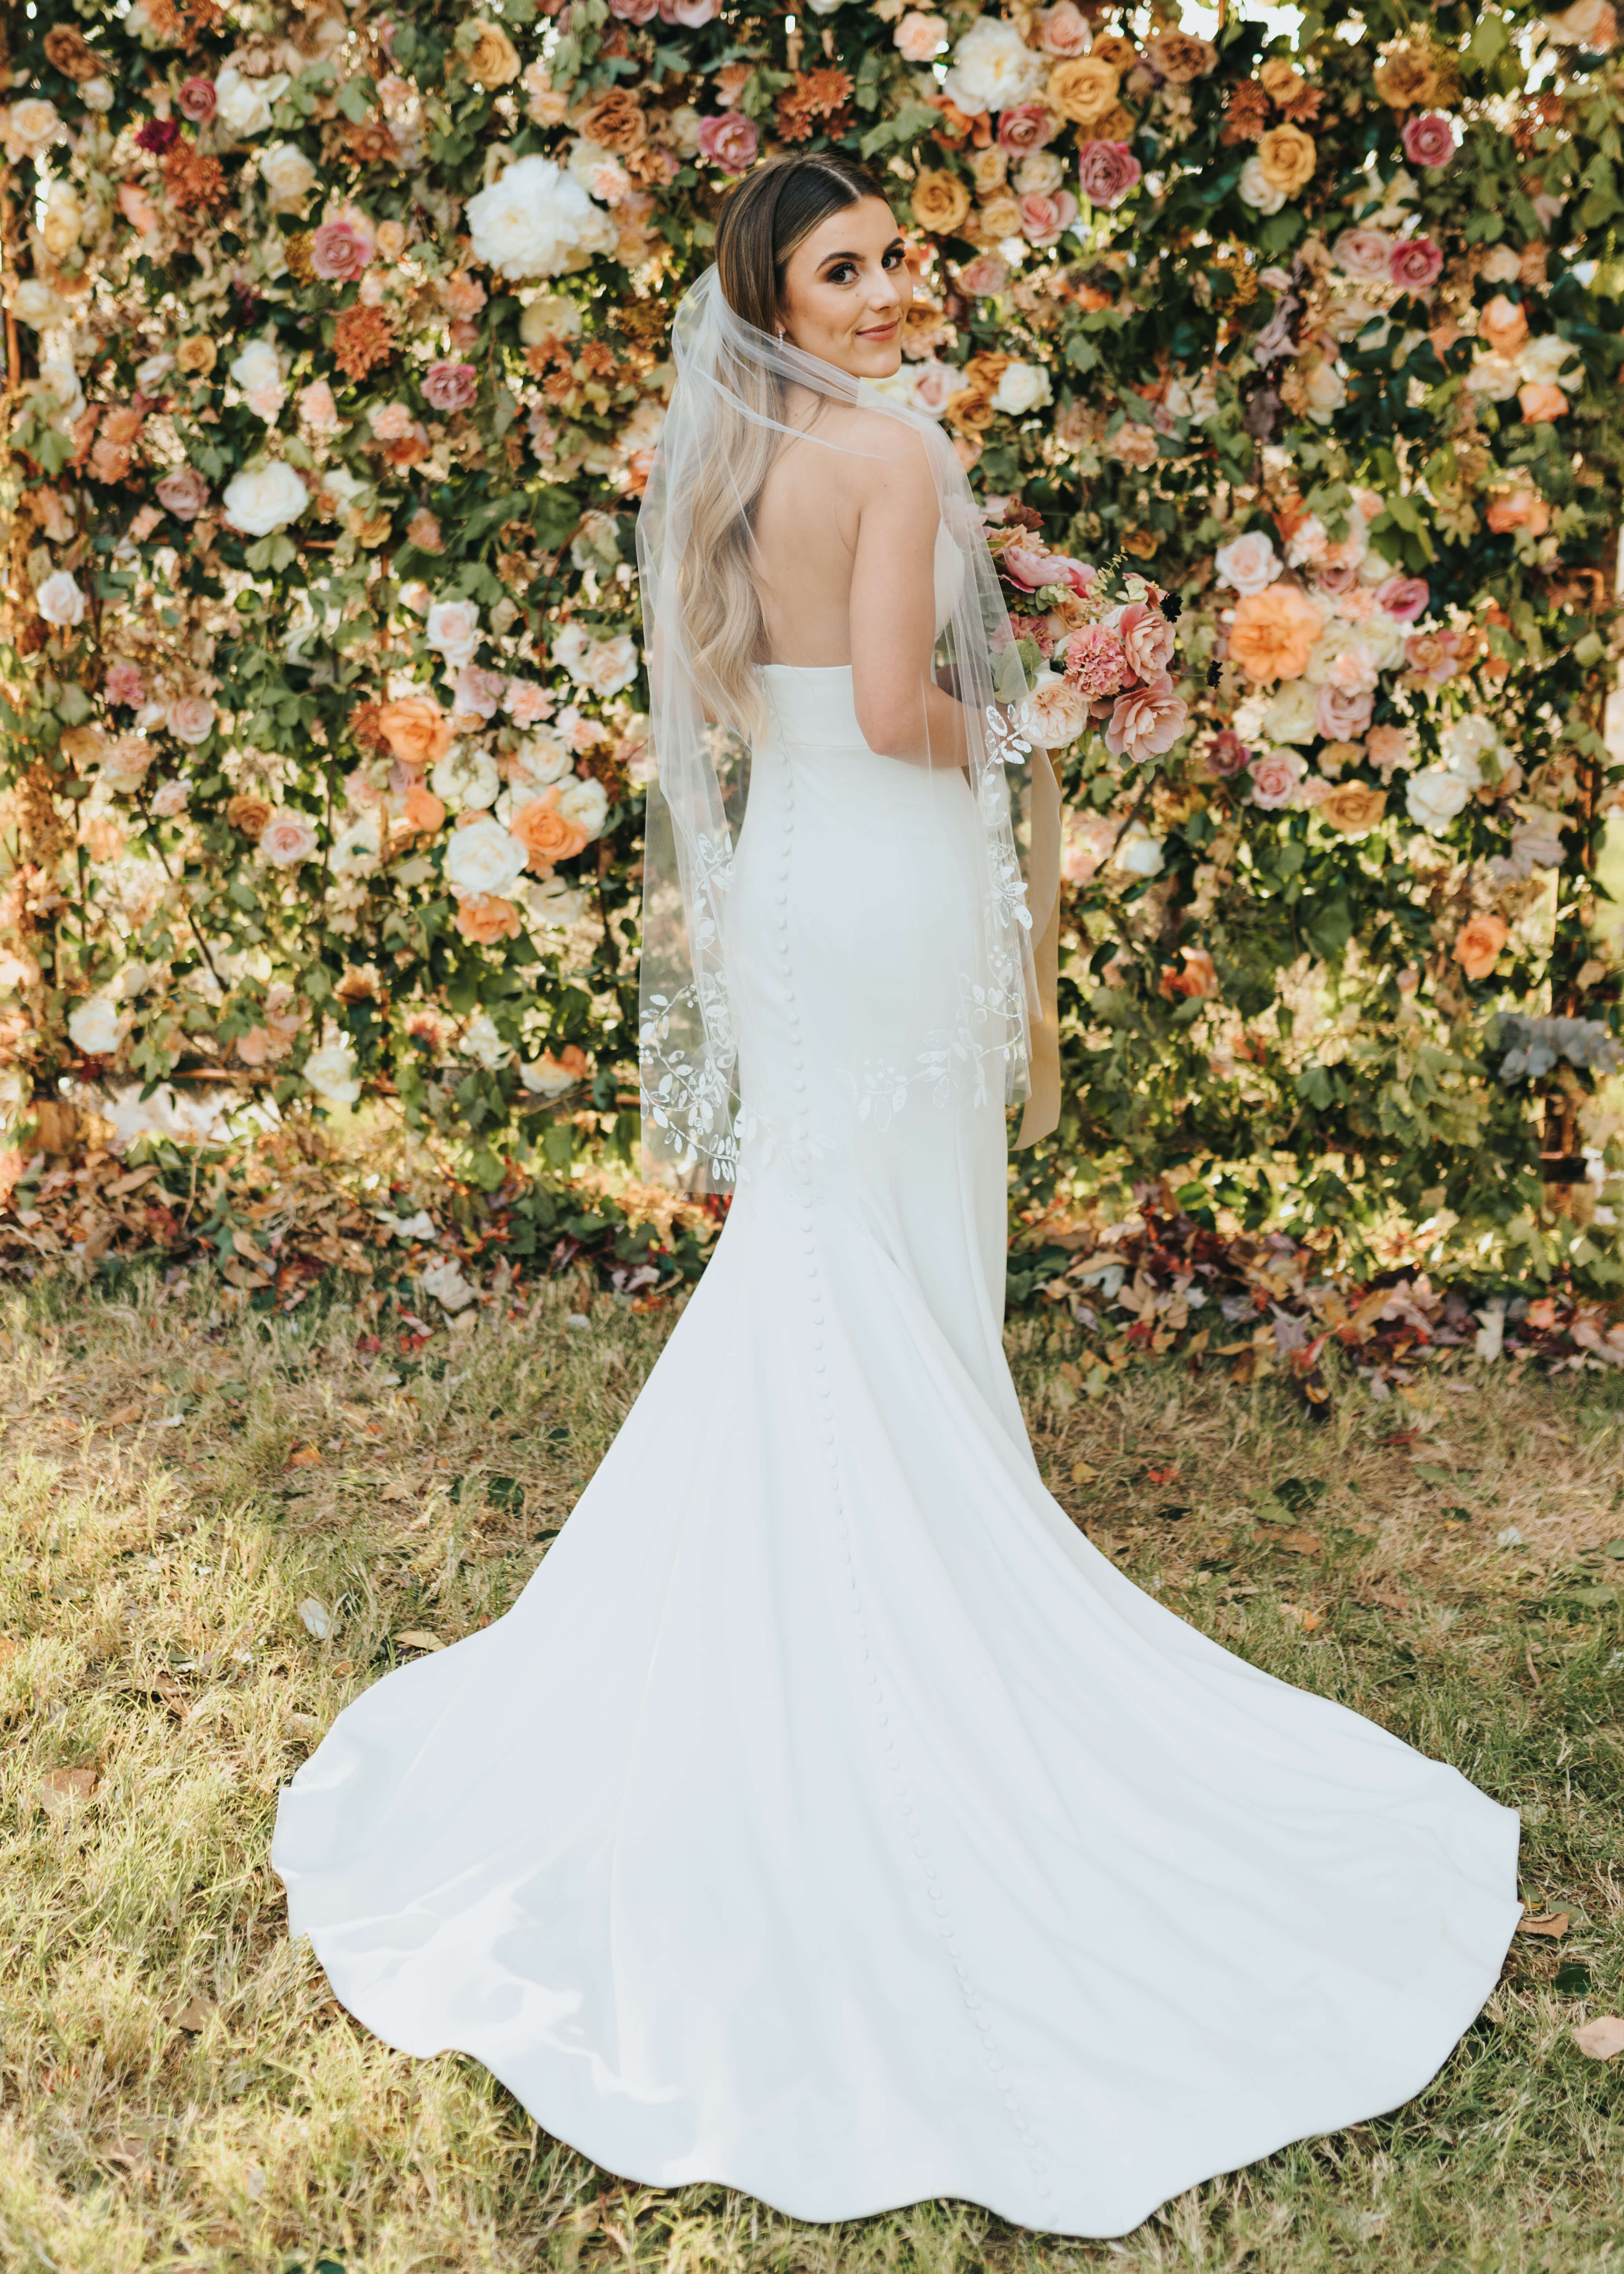 backless dress shot in front of floral wall